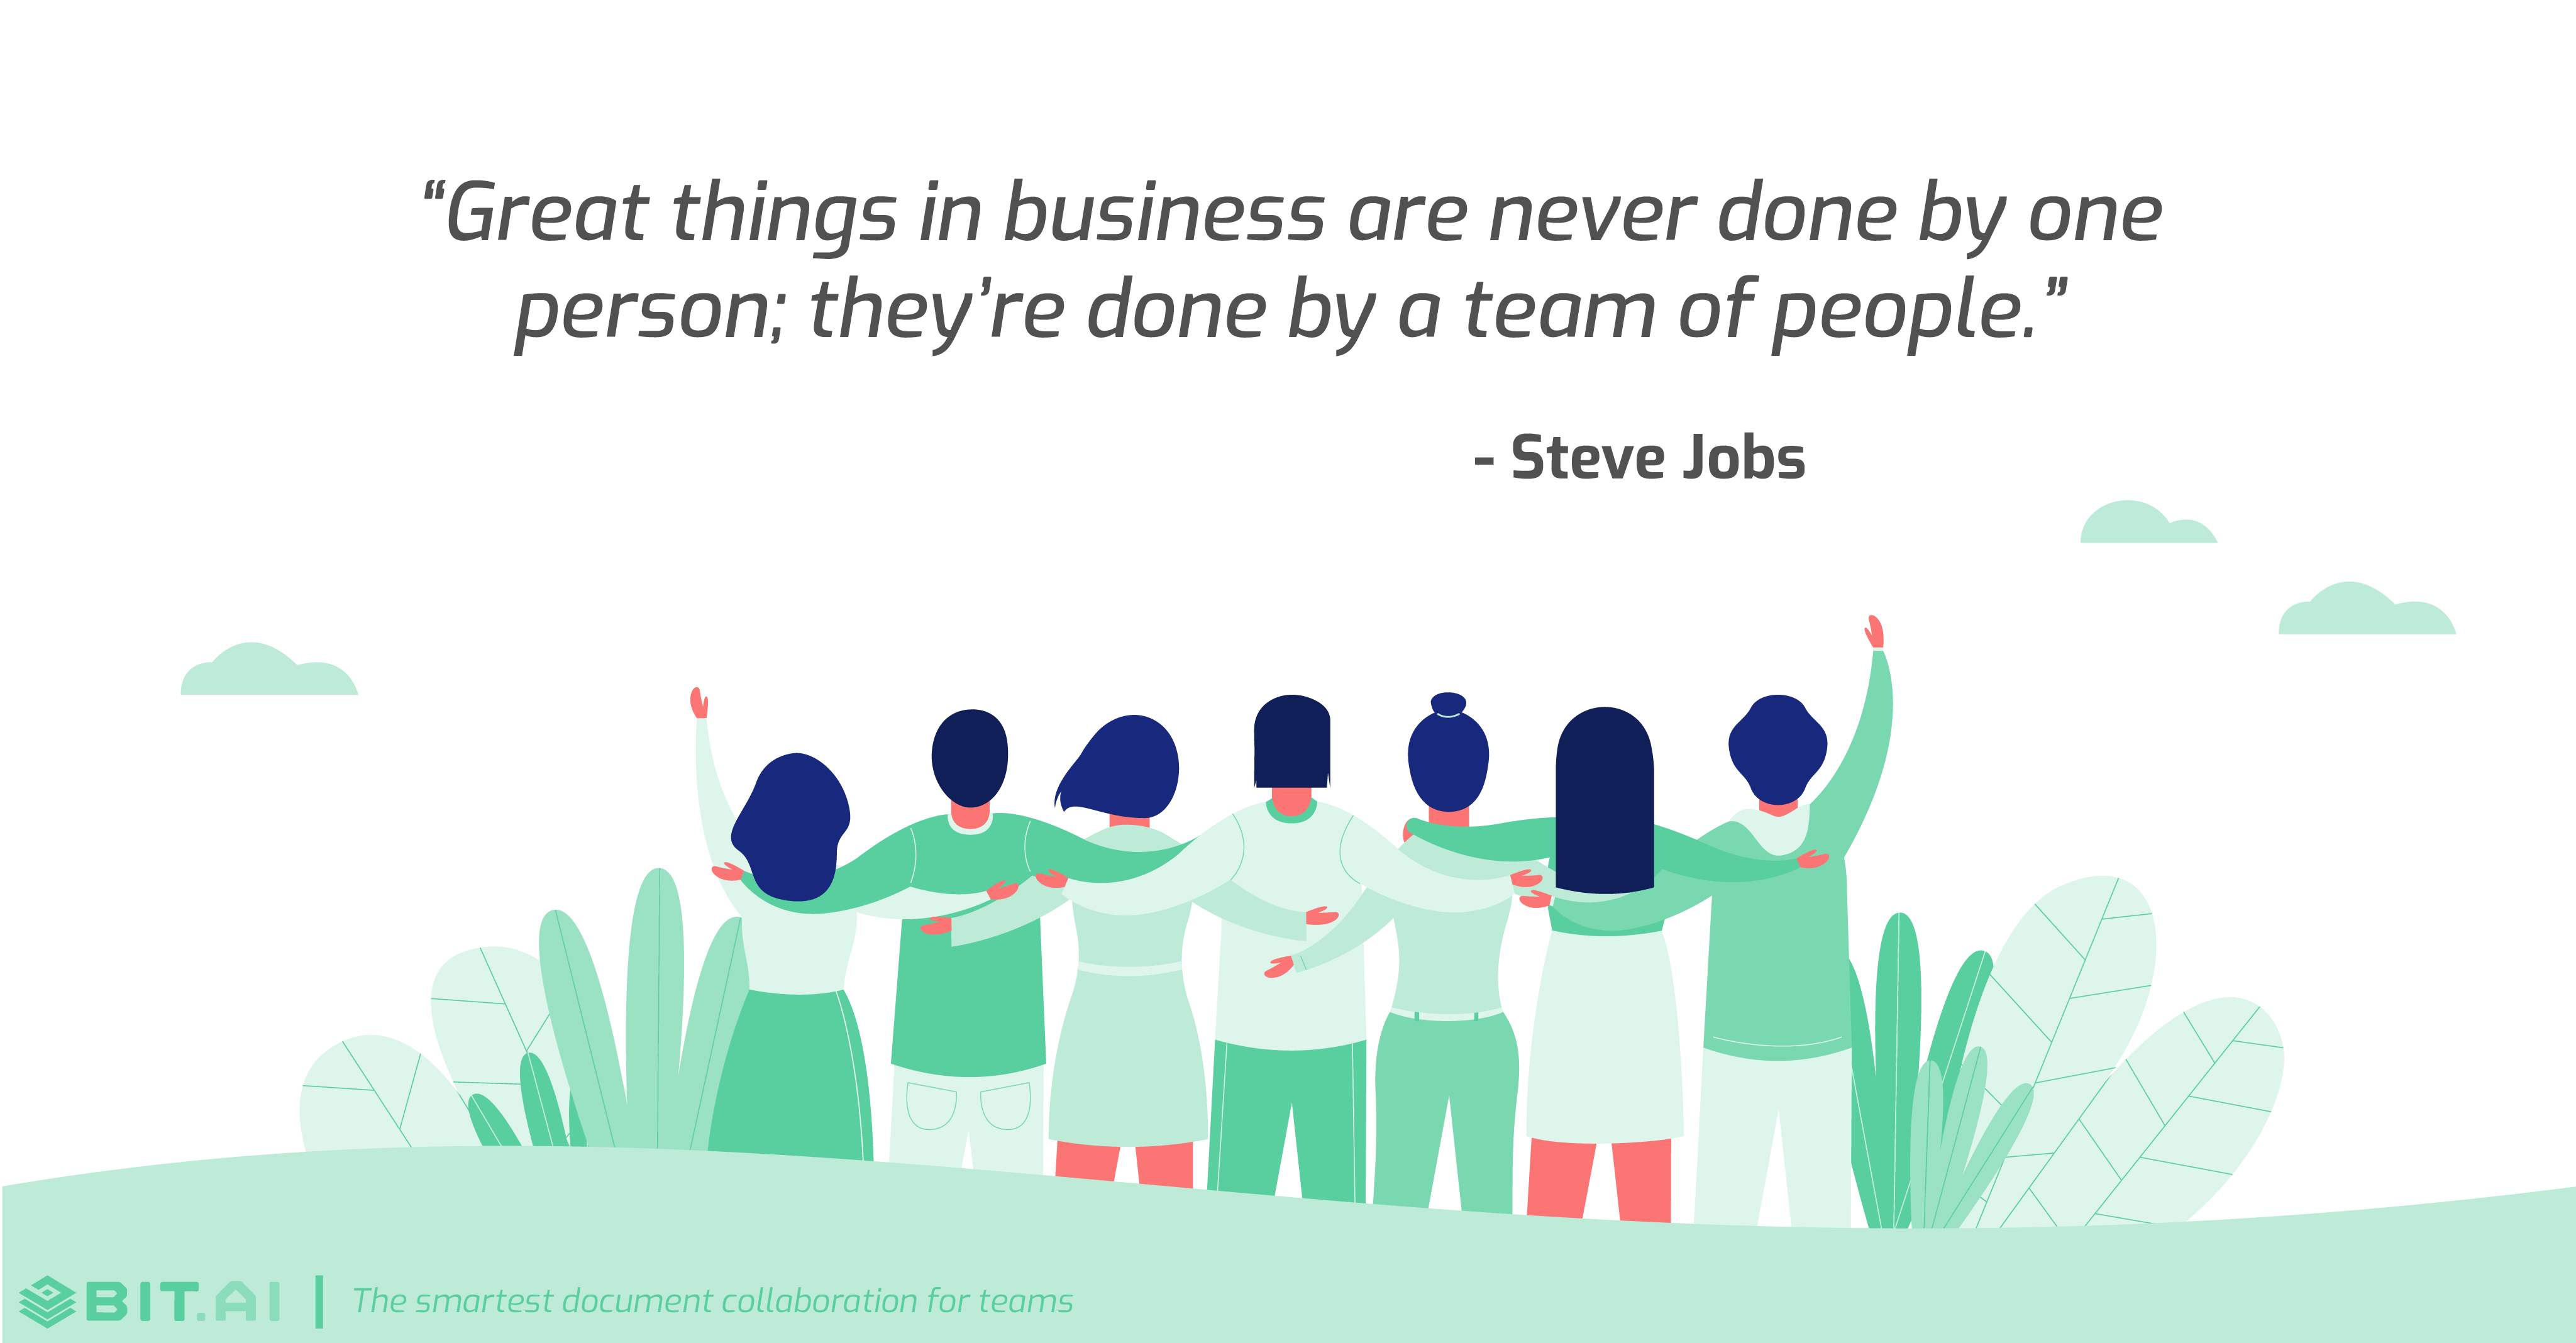 Teamwork collaboration quote by Steve Jobs